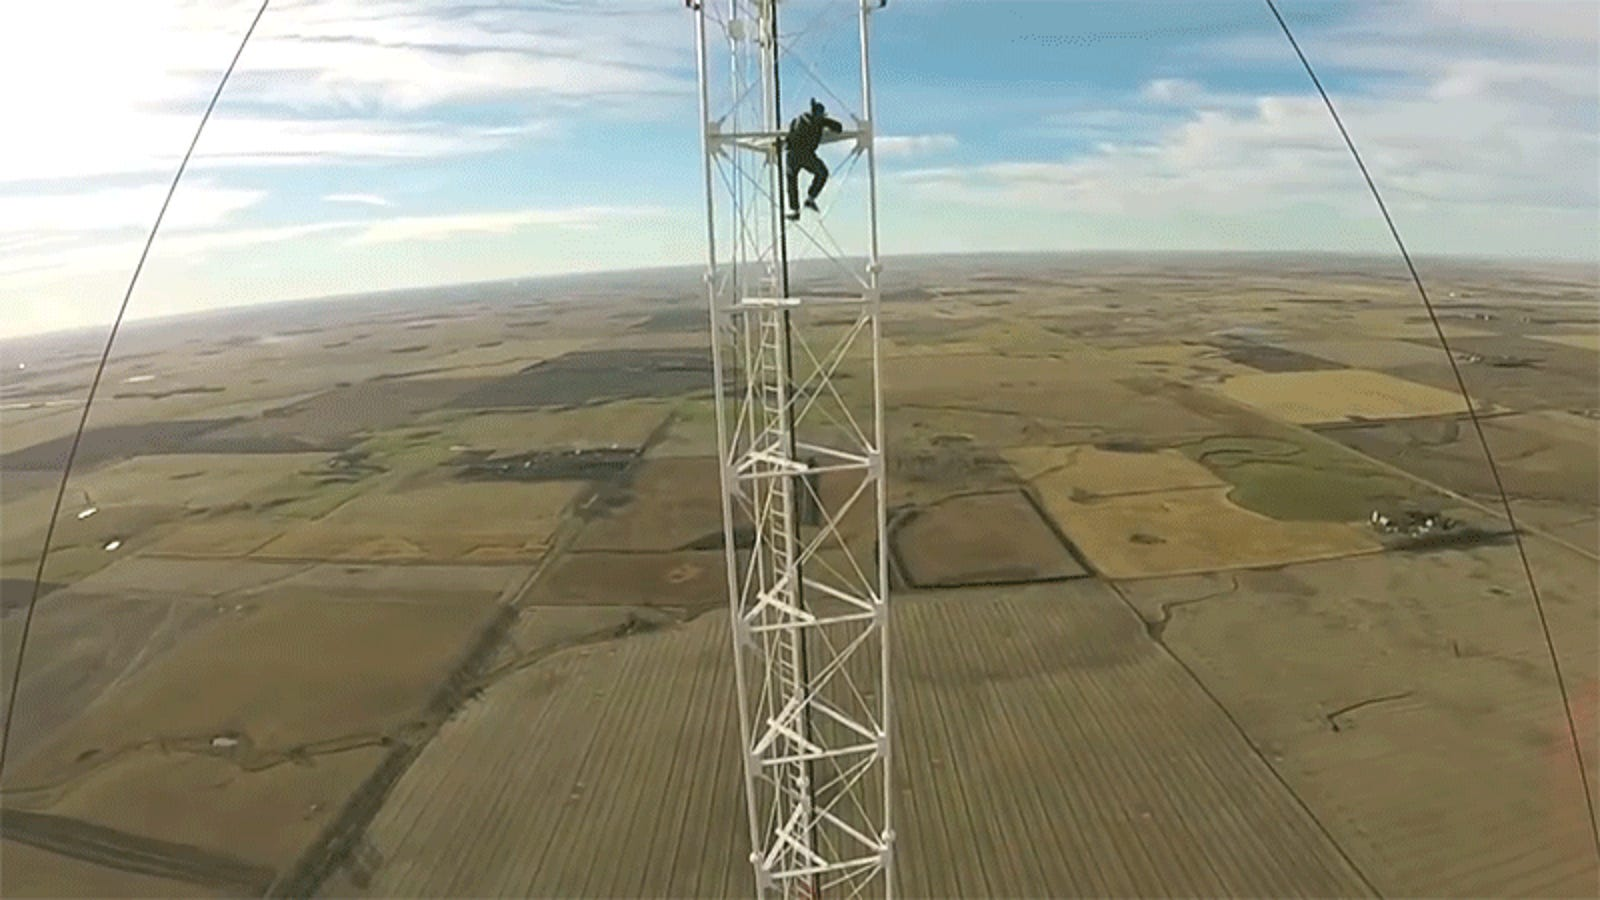 Climbing a 1,500-Foot Radio Tower Without Safety Gear Is